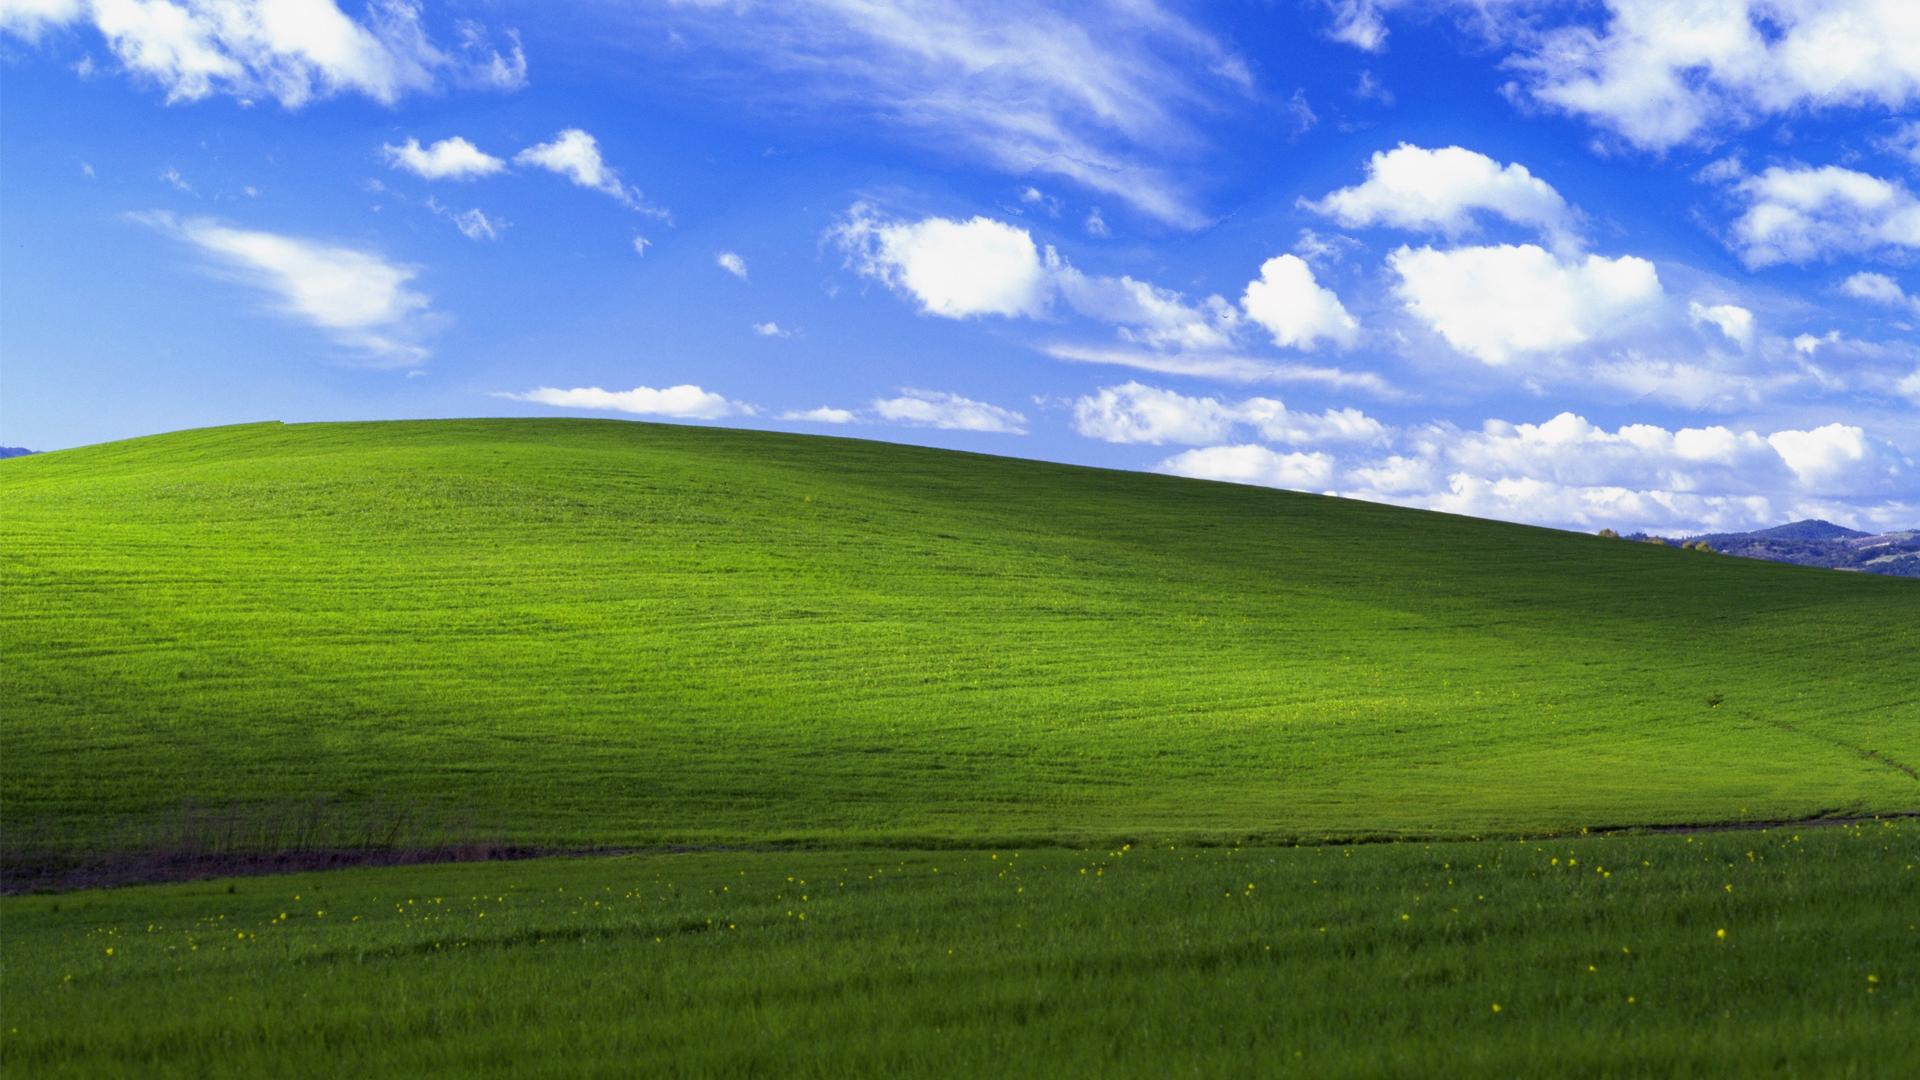 HD Wallpapers For Windows Xp Free Download